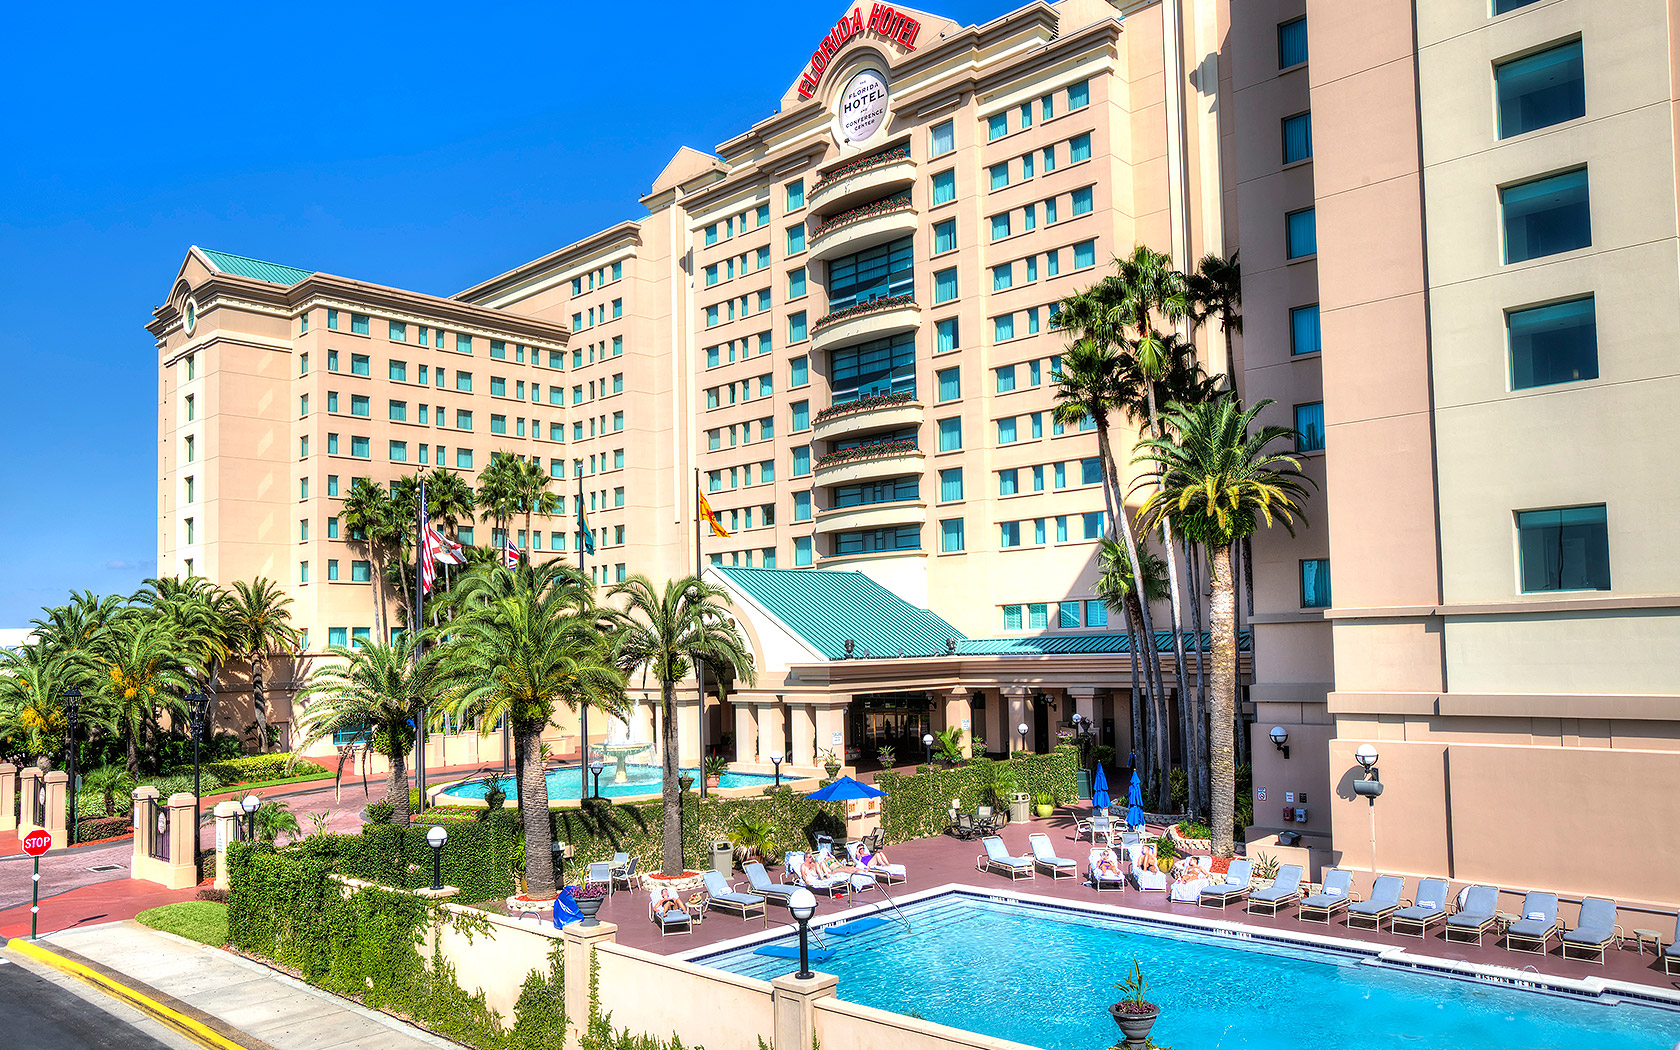 The Florida Hotel Conference Center Orlando Fl Official Website